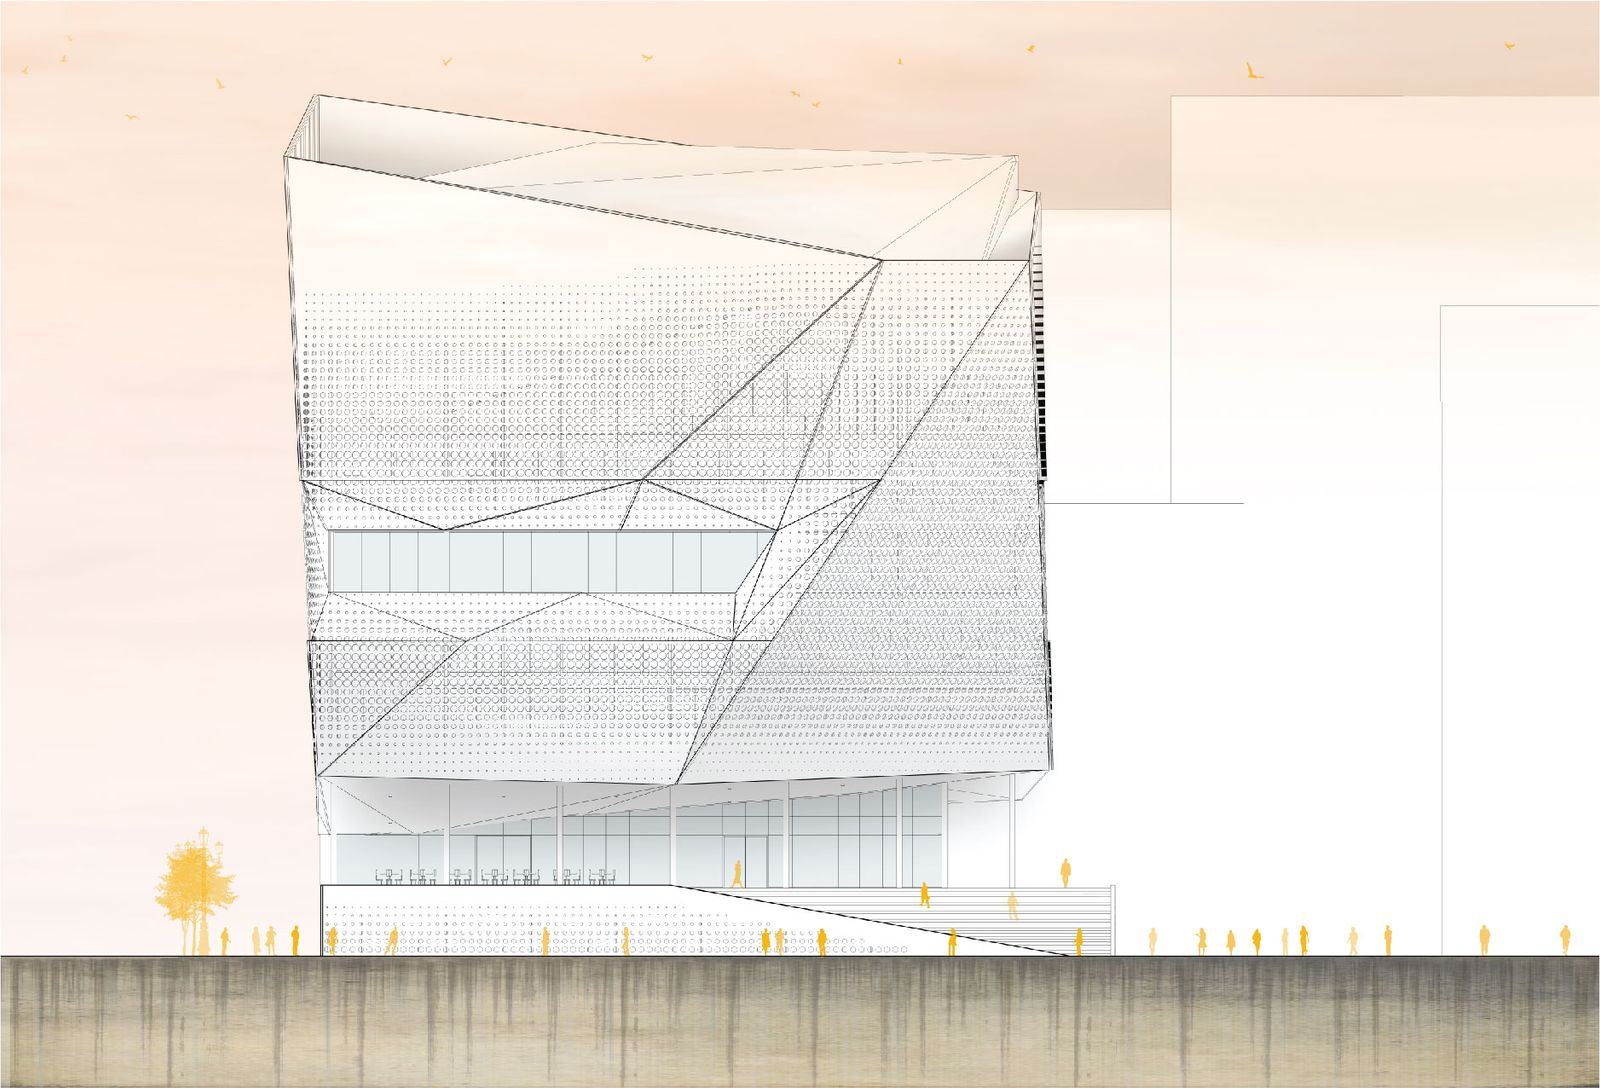 Elevation along Proposed New Alley Mint Plaza Extension